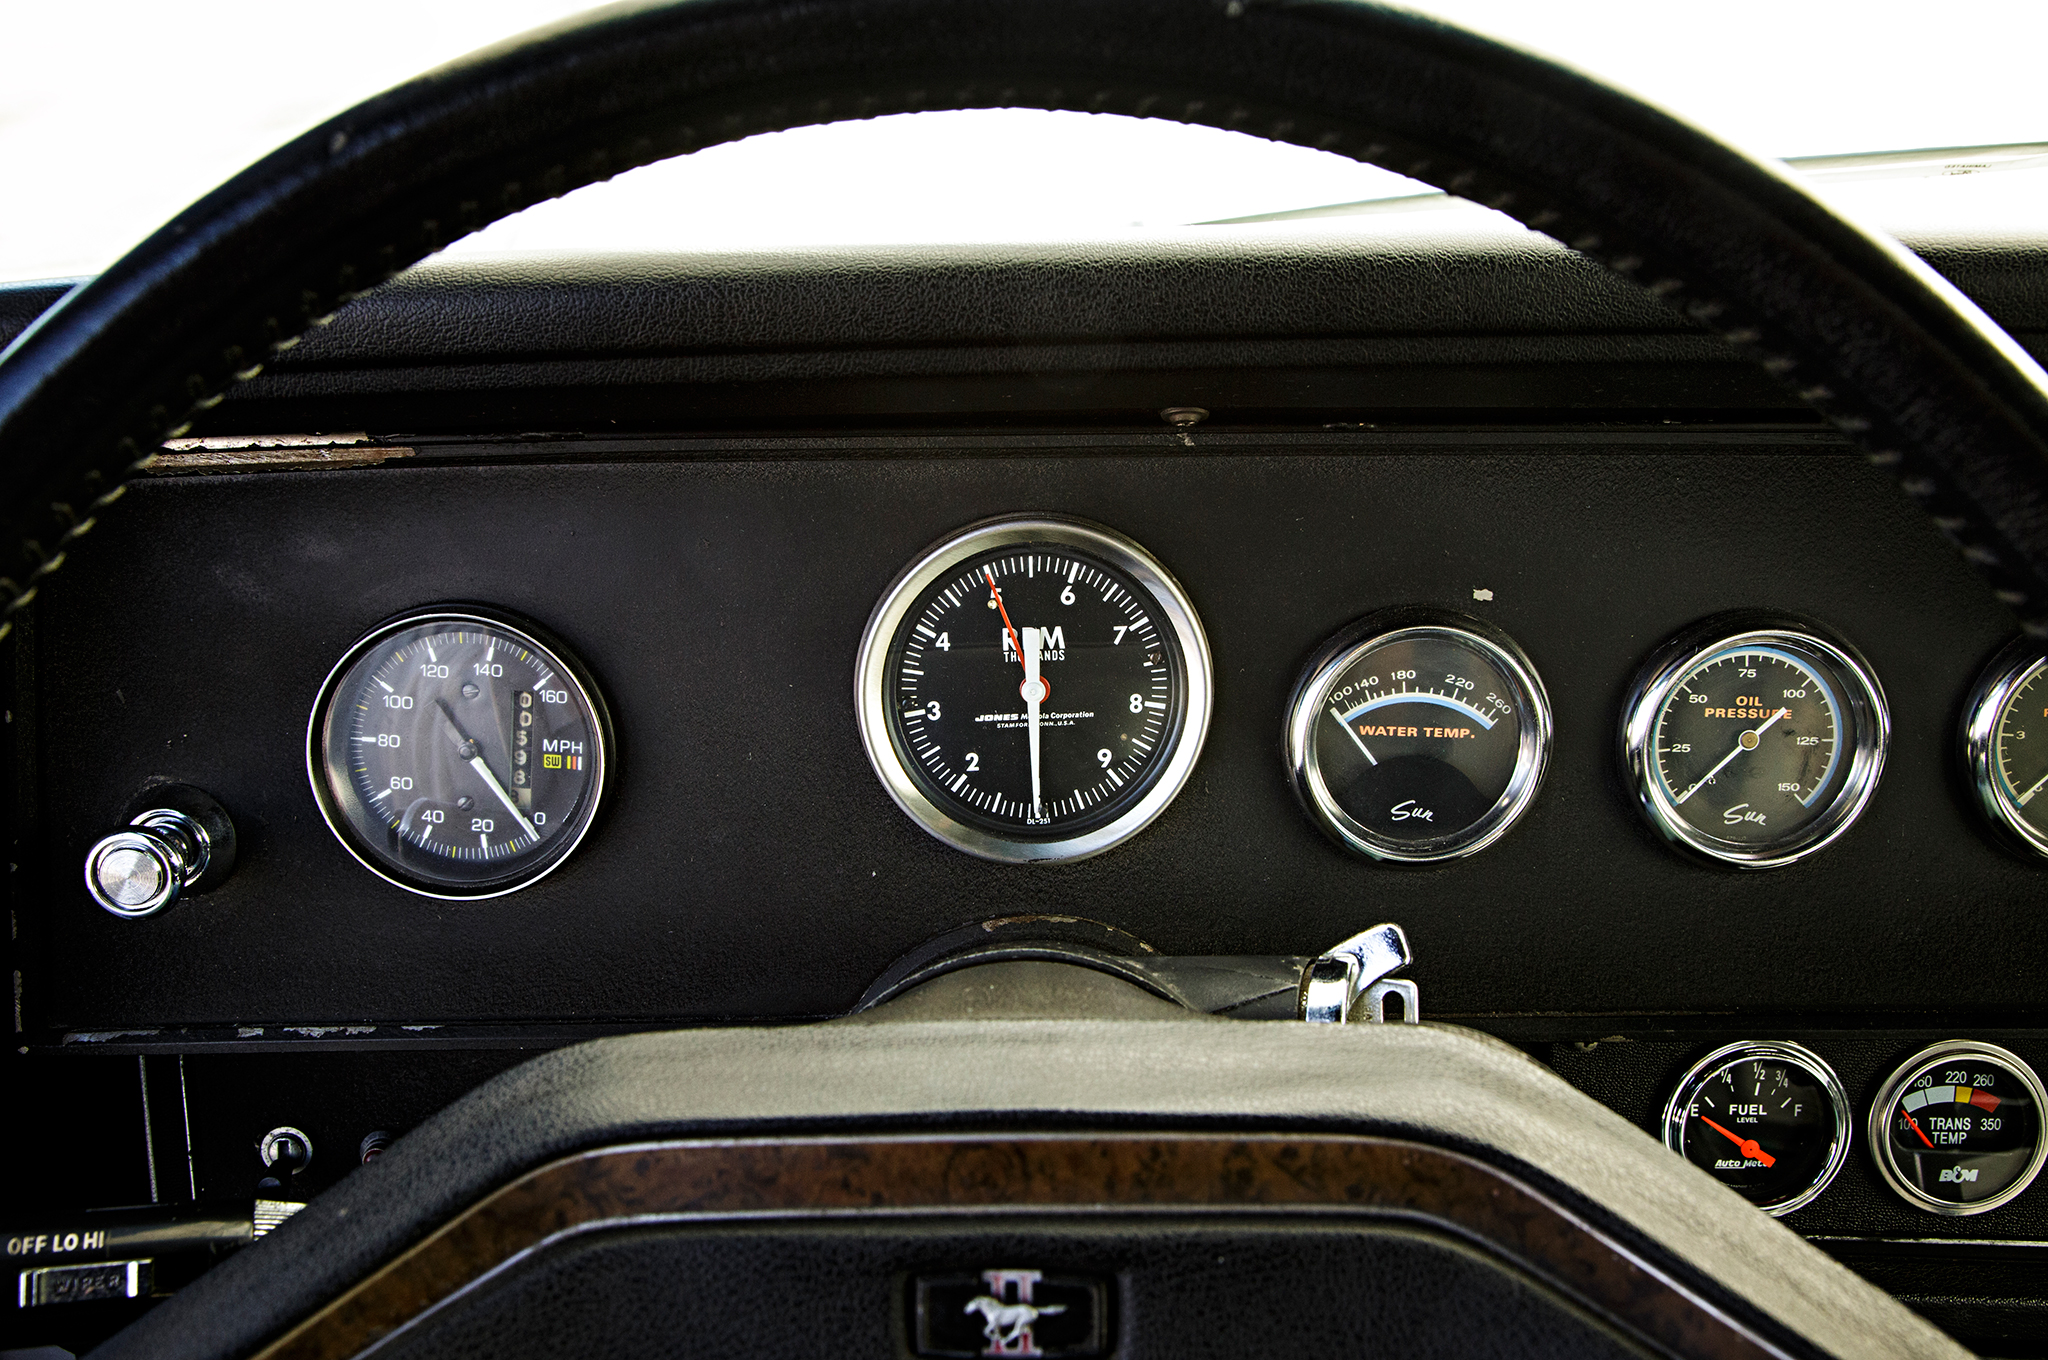 The gauge panel was custom fabricated by G&R and, it appears, was installed when the turbos were done. The steering wheel still shows some cigar burns from Joe Ruggirello.